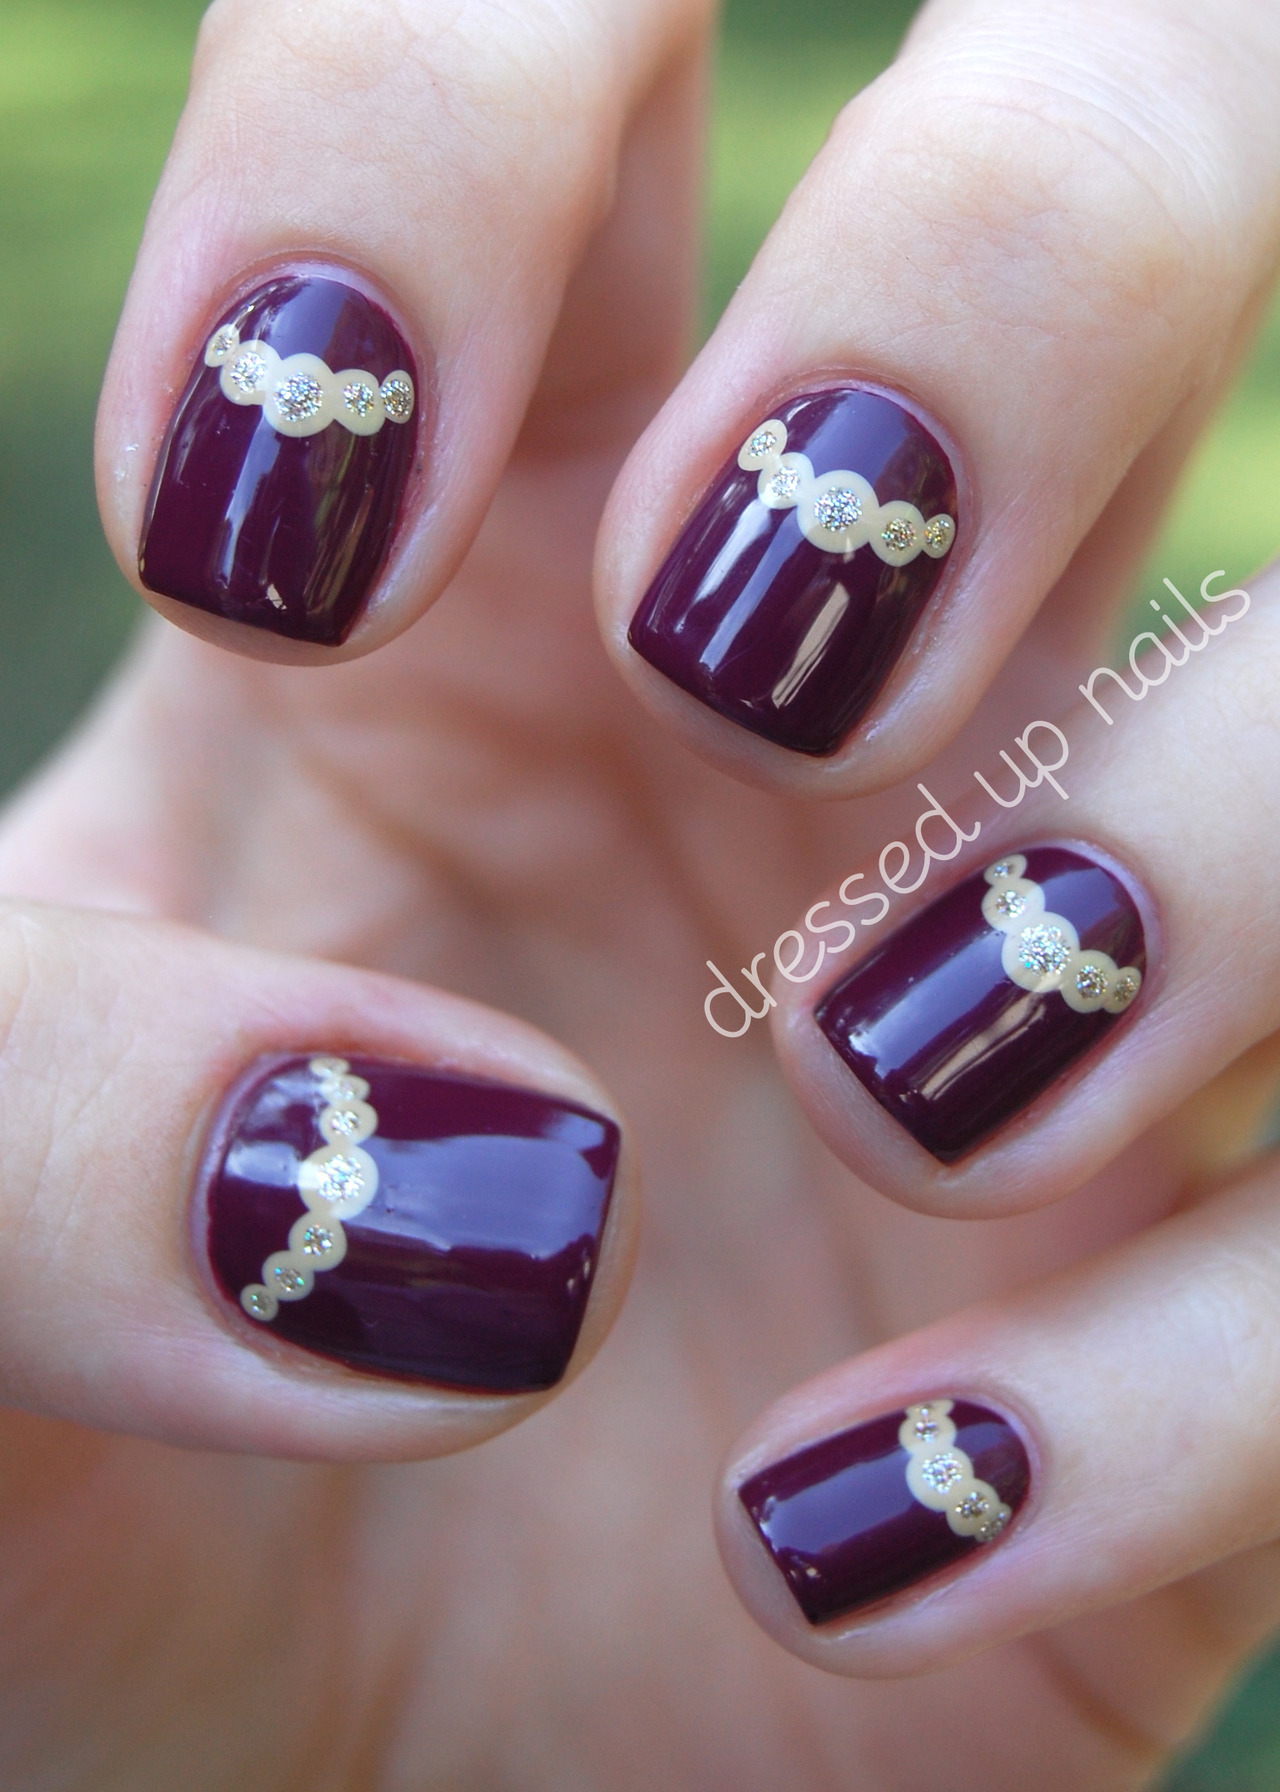 dressedupnails:  Today I have the second installment in my China Glaze On Safari nail art series, which isn't a series so much as an excuse to use only colors from this collection for a while because I am so deeply in love with all of them. I think it looks like my nails are wearing little necklaces! Classy lil things. Read more and see more pics on the ol' blog! (also, did you know I'm on Facebook?)